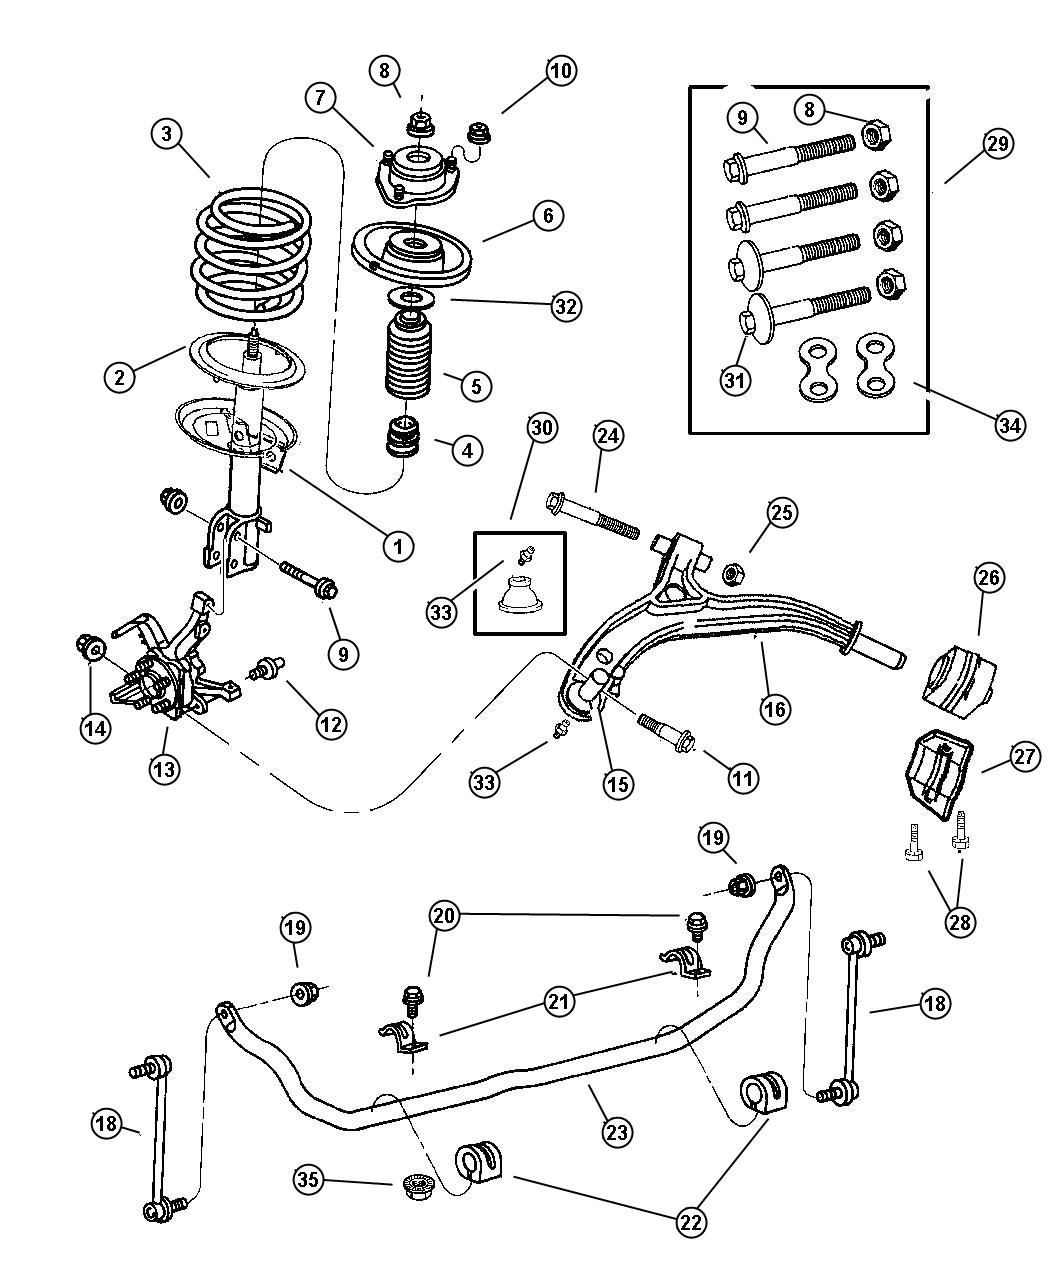 Excursion Fuse Box besides 95 Cavalier Engine Diagram as well Geo Fuse Box likewise Plymouth Voyager Wiring Diagram  pressor further Toyota Corolla Gas Tank Car Diagram Html. on 2l4yw trying locate fuel pump relay 92 buick centuet